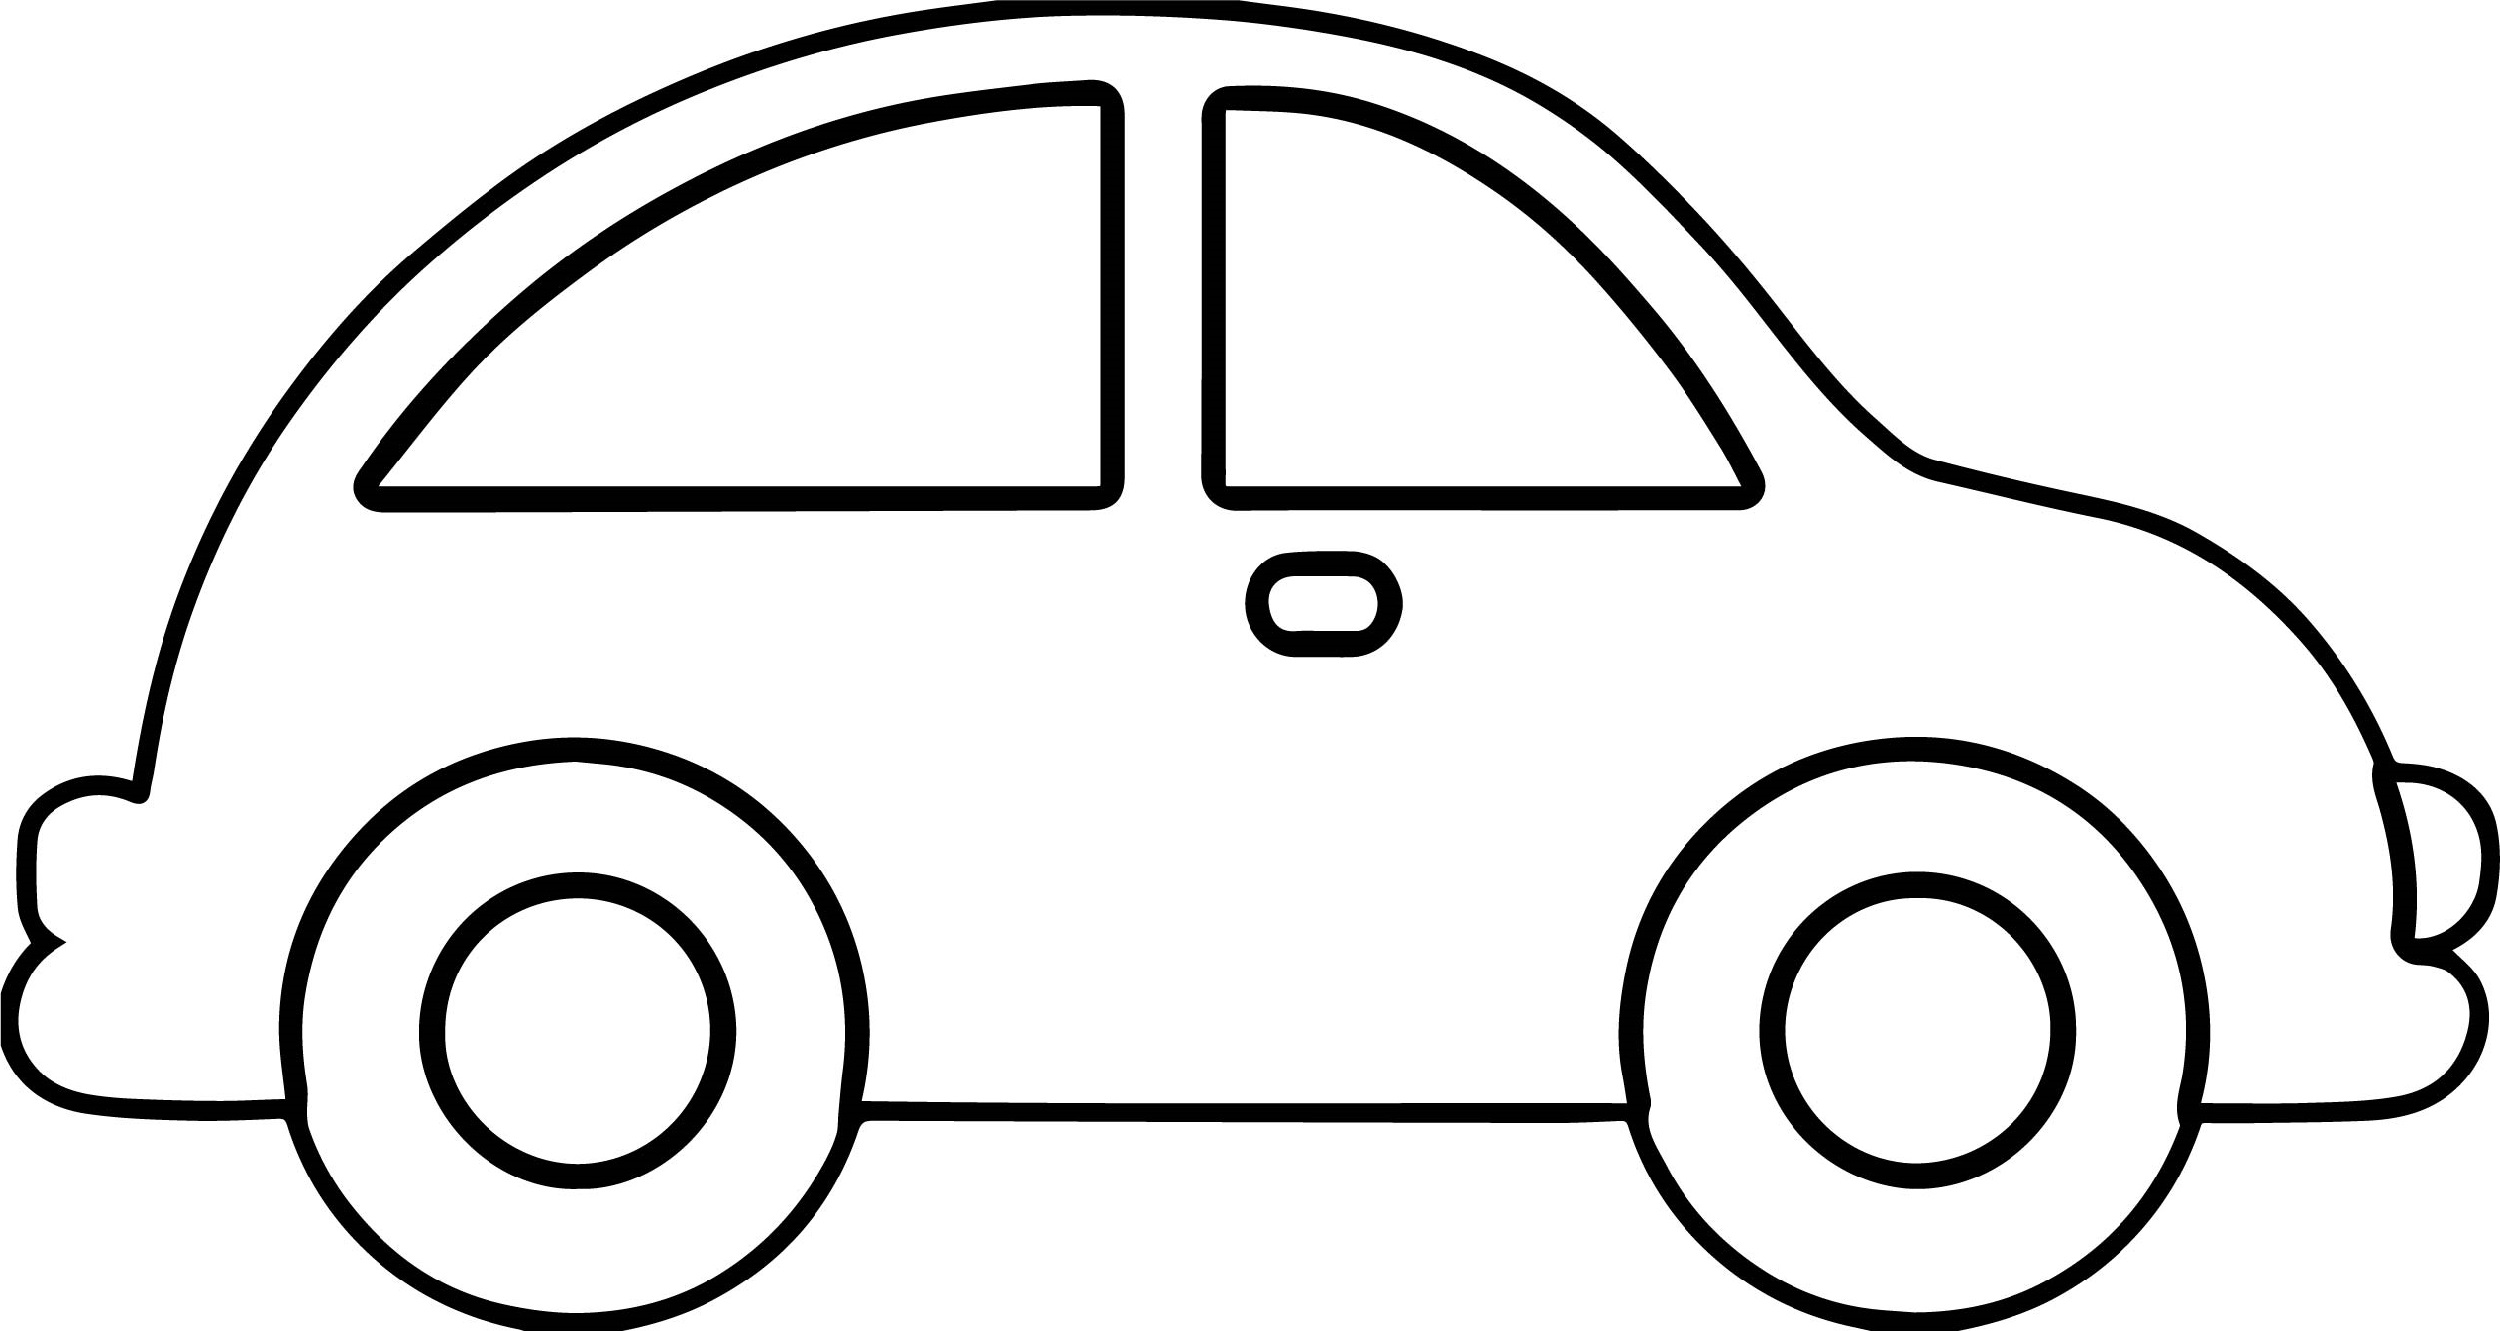 Cool Car Coloring Pages for Kids | 101 Coloring